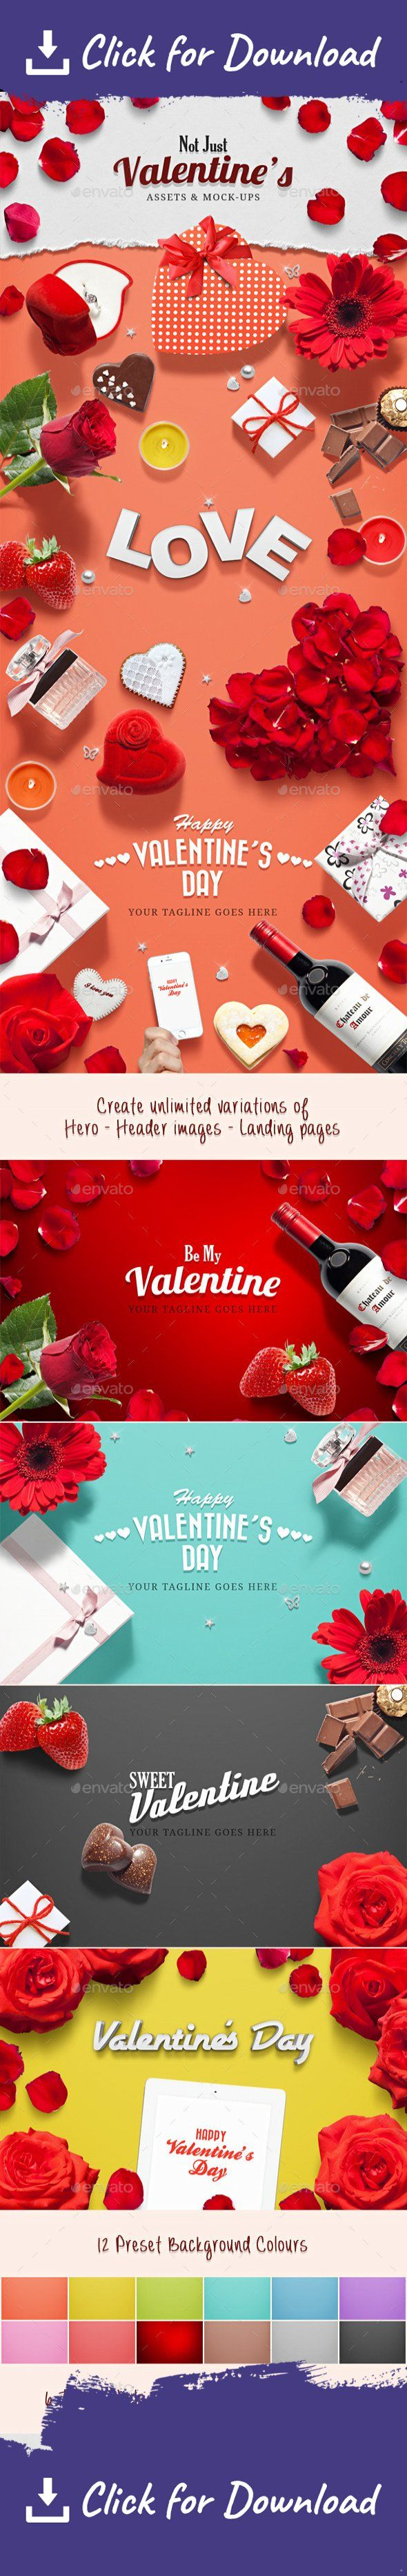 advertising, assets, candy, chocolate, collection, flower, greeting card, hand, heart, holiday, ipad, iphone 6, isolated, landing page, love, mock up, mock-up, phone, photo realistic, postcard, present, presentation, red, render, rose, scene creator, screen, St Valentine's Day, valentine, wedding This is the scene creator not just for upcoming Valentine's Day to help you create unlimited variations of header / hero images / landing pages. Contains 64 items + 12 pre-set background colours....